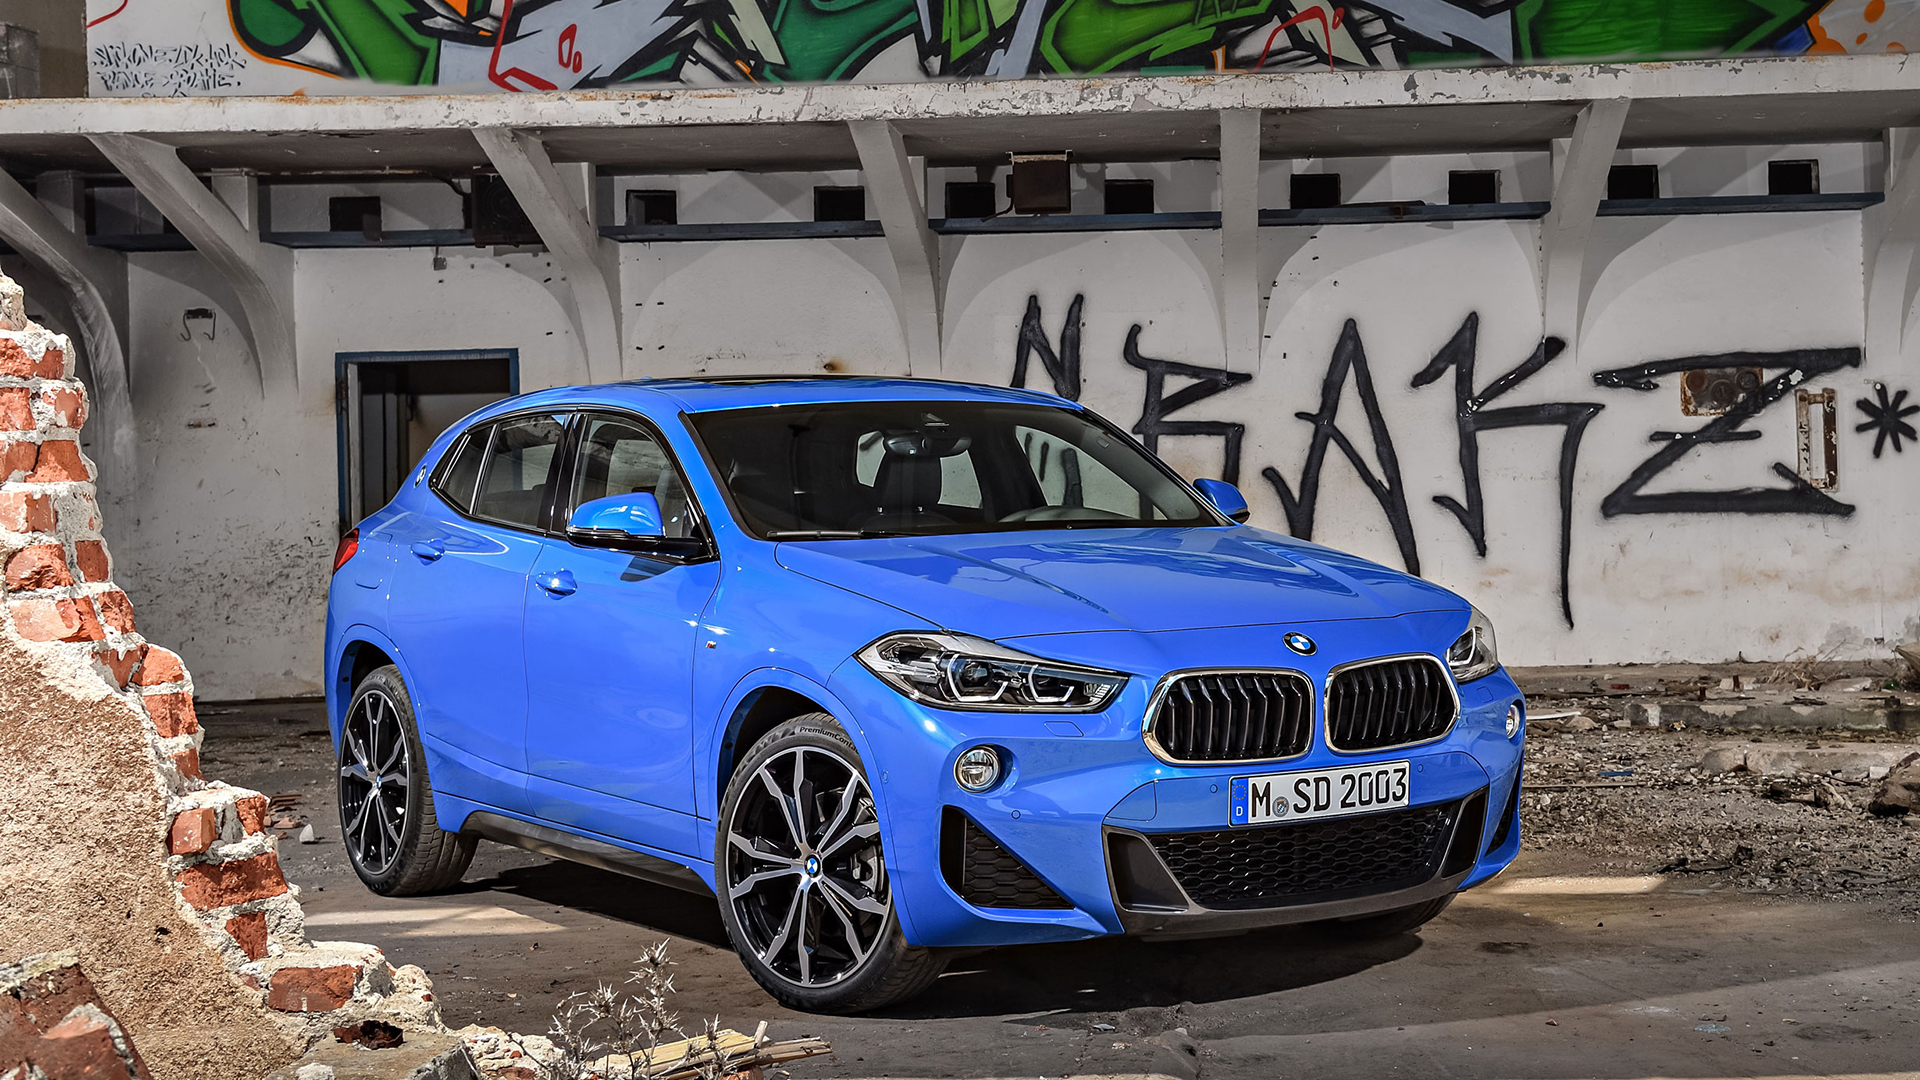 The New BMW X2 Brings Some Extra Style To The Small SUV Market, And Rivals  Cars Like The Range Rover Evoque.